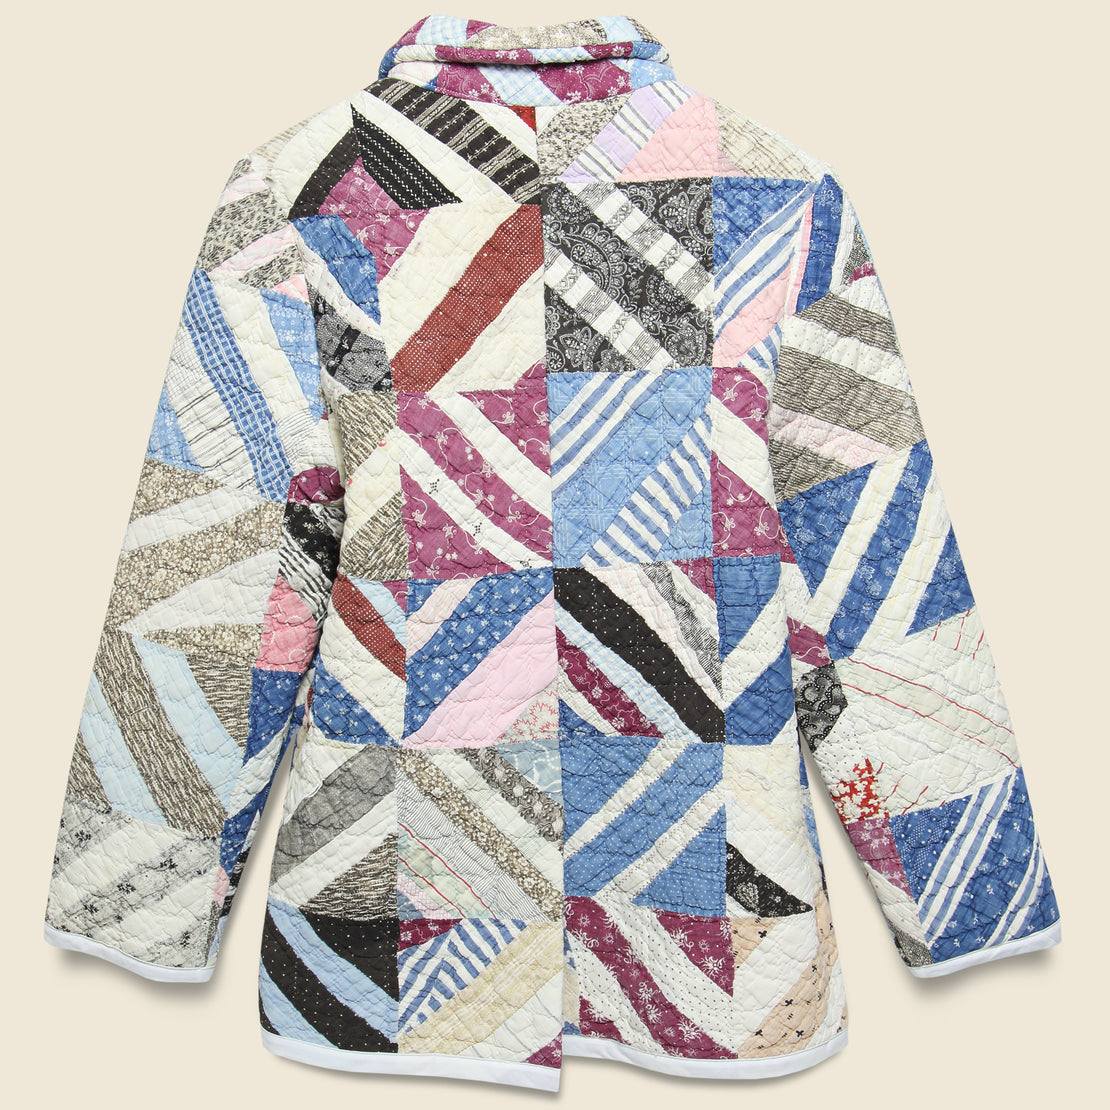 Moving Day Quilt Jacket - Natural/Navy/Plum Yankee Puzzle